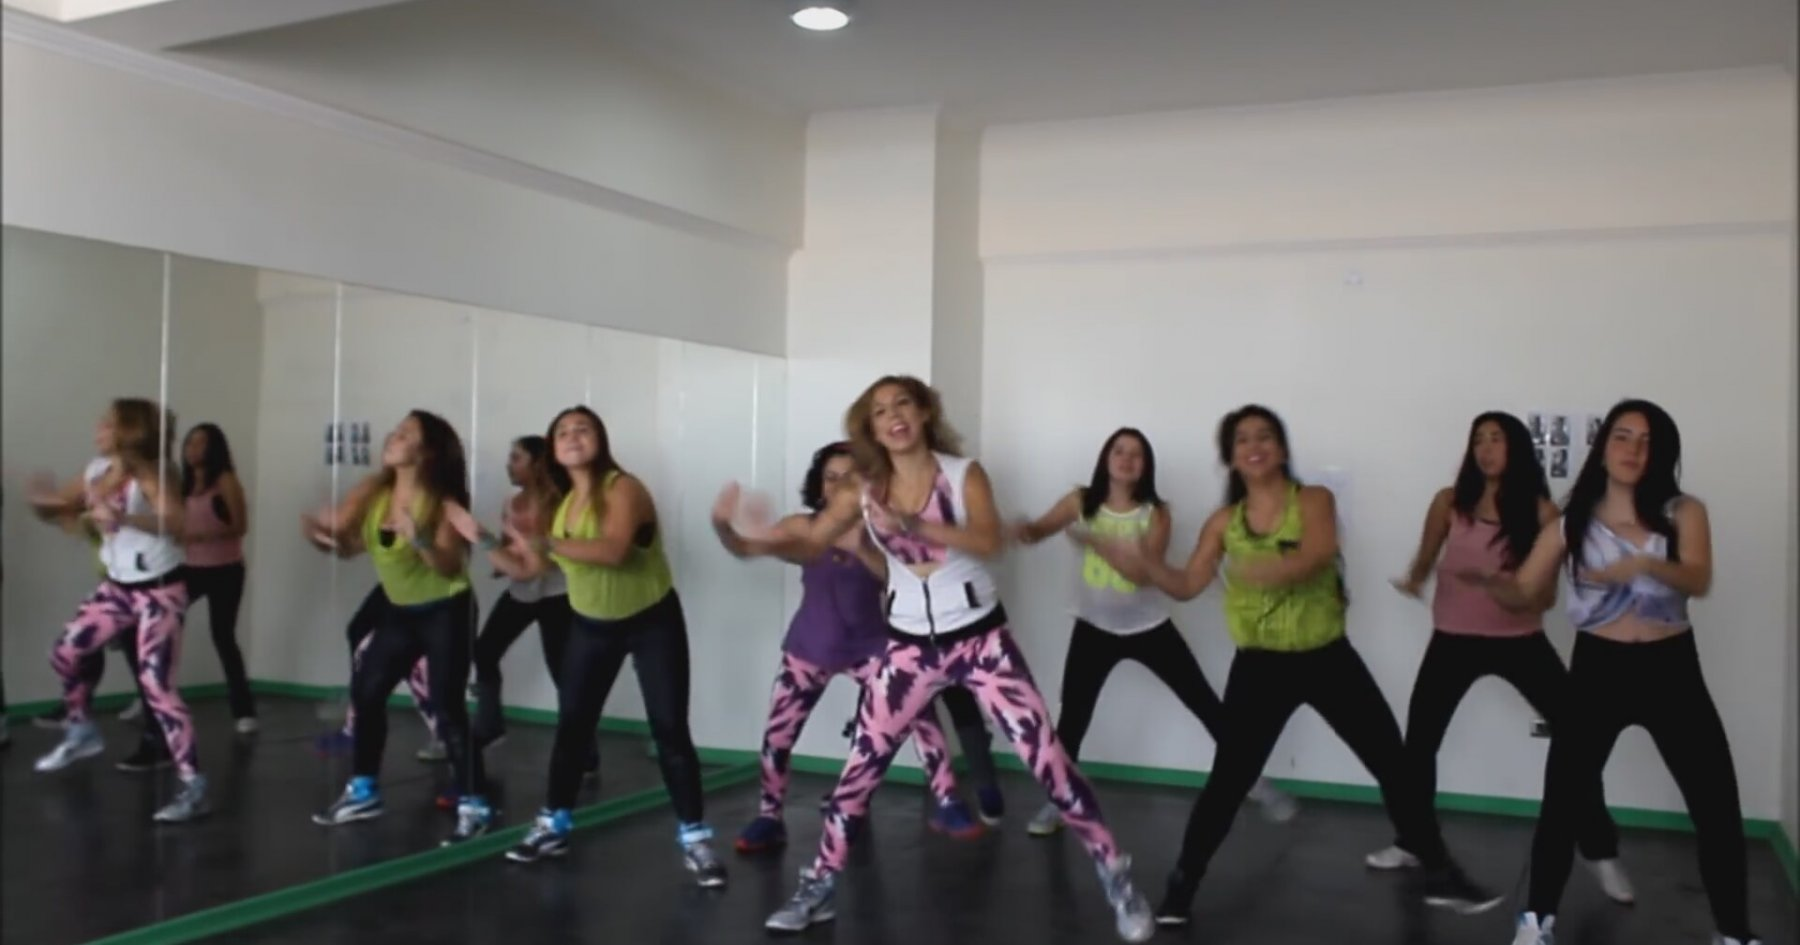 TRAVESURA ZUMBA FITNESS ROMY SIBEL CHILE СКАЧАТЬ БЕСПЛАТНО